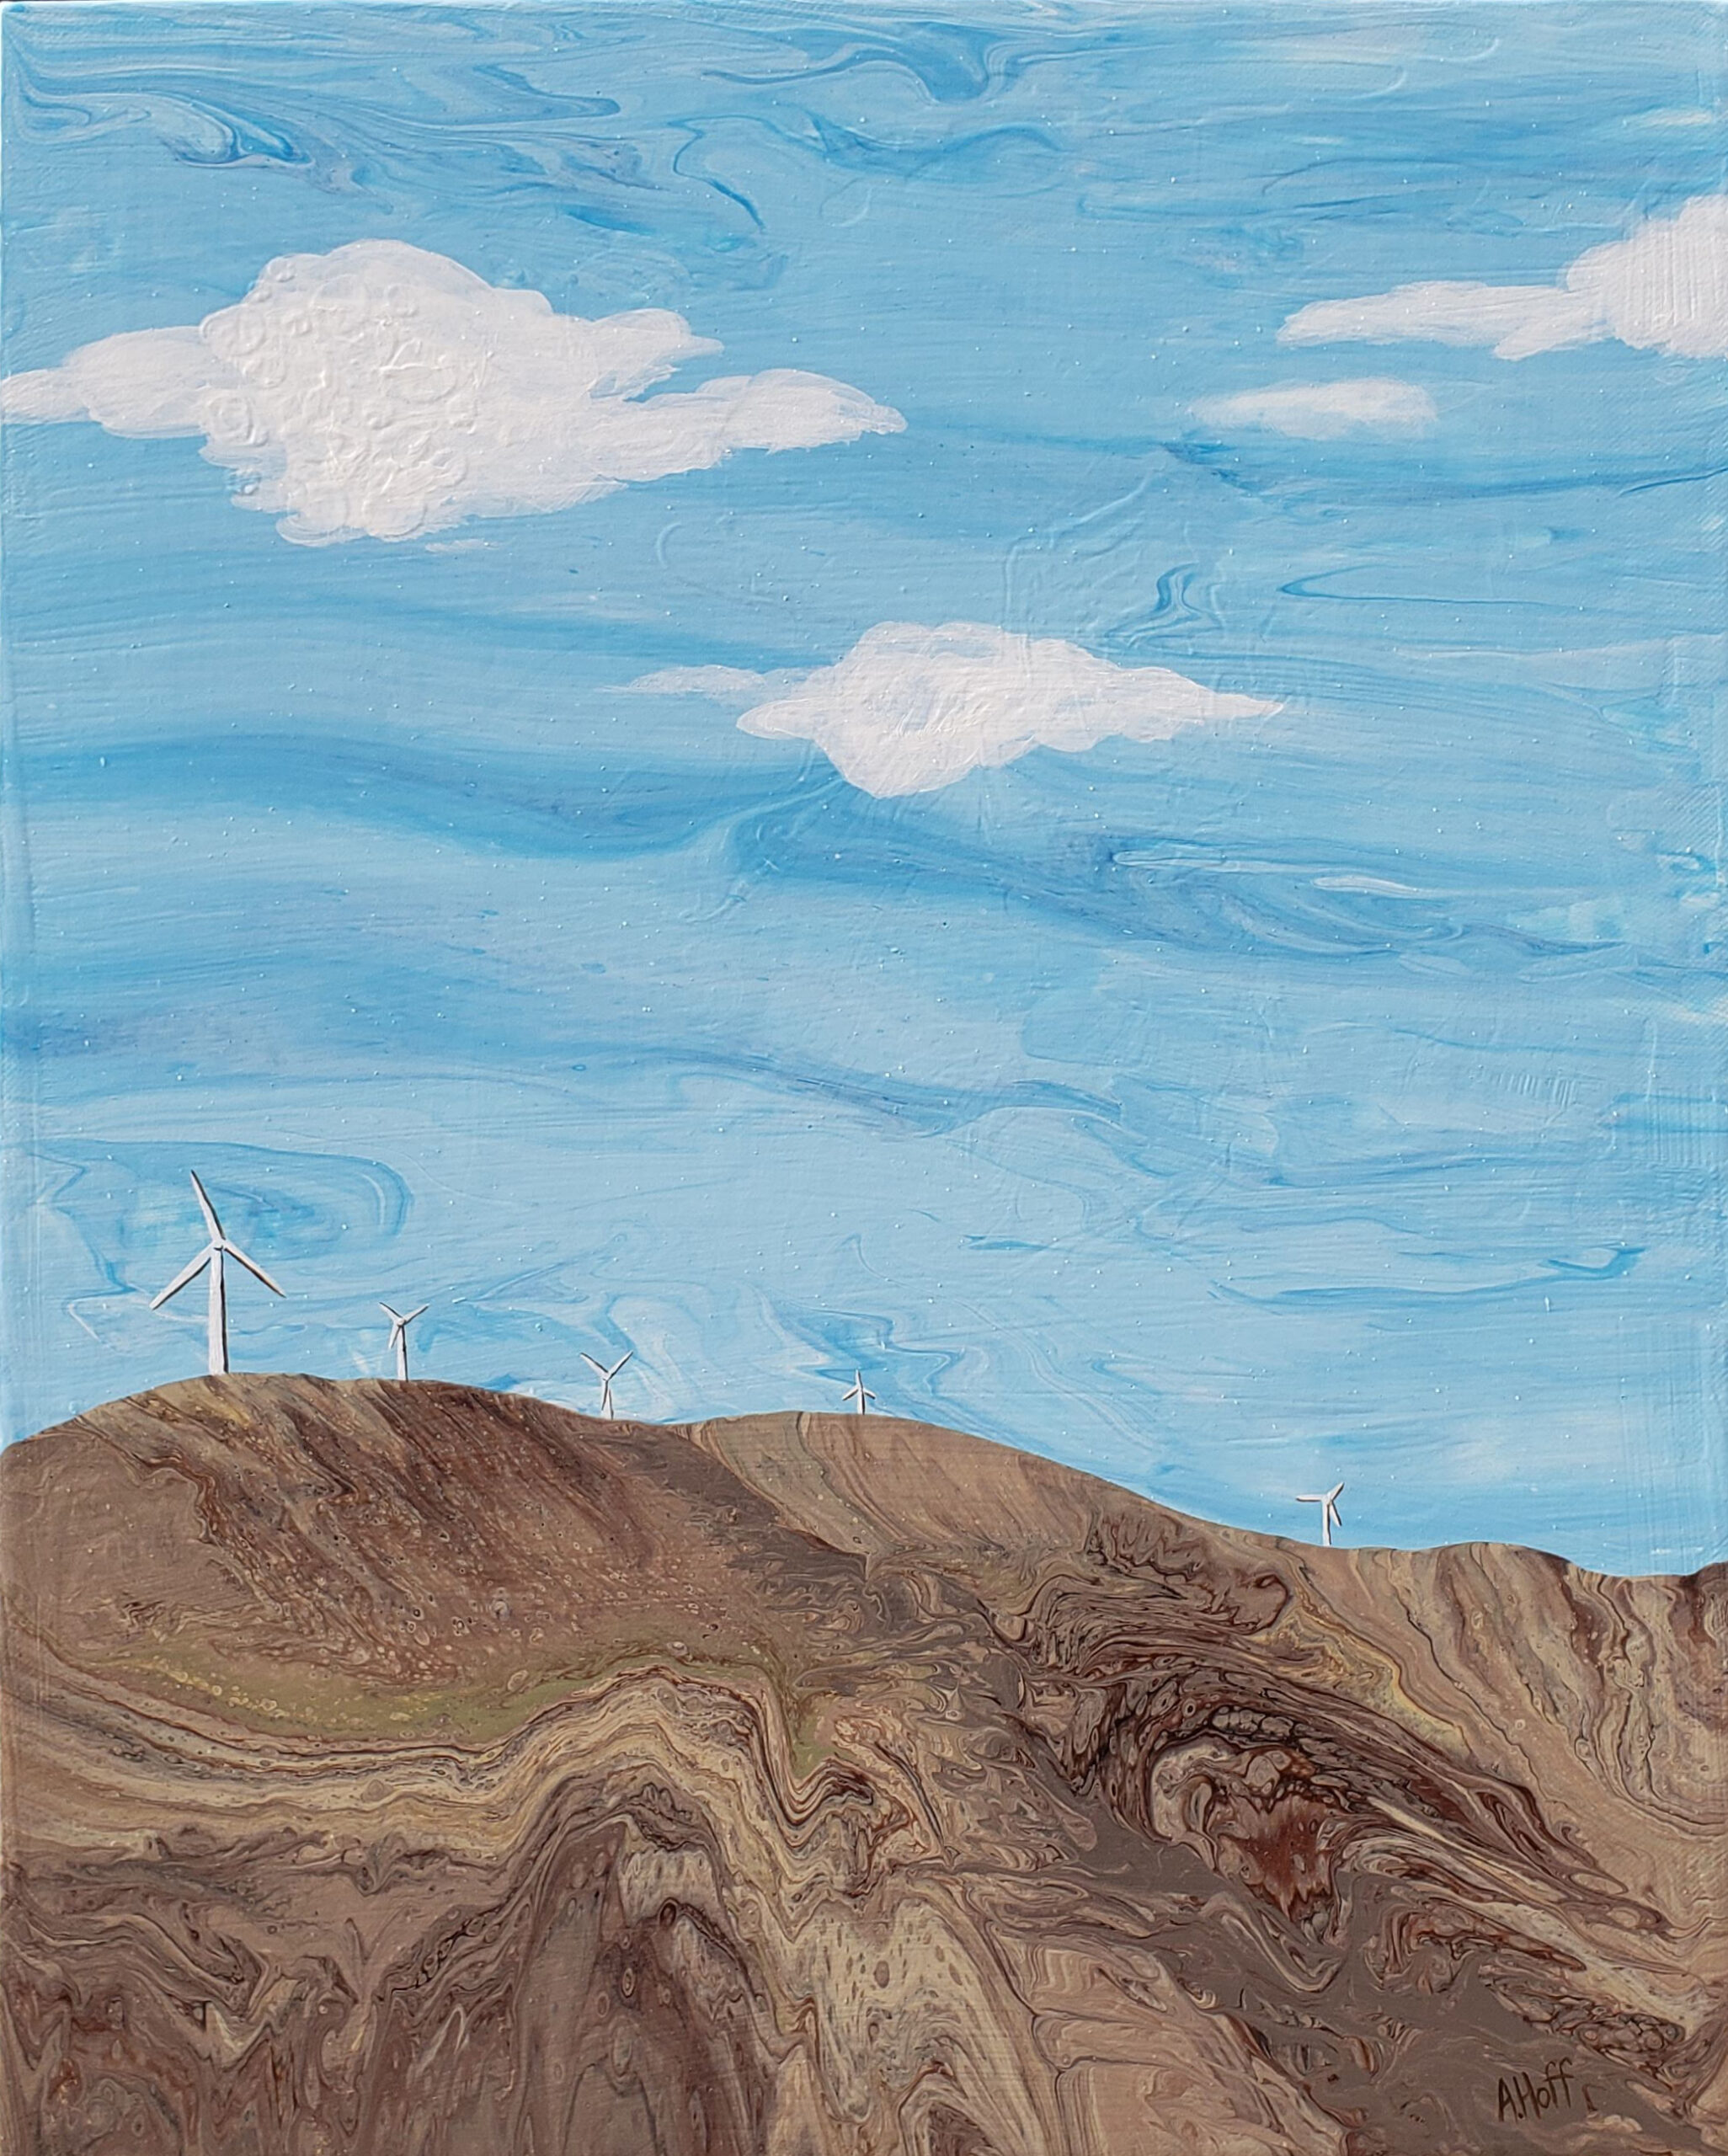 """""""Dust in the Wind"""" acrylic painting by April Hoff, depicts small wind turbines in an abstract landscape of blues and browns"""